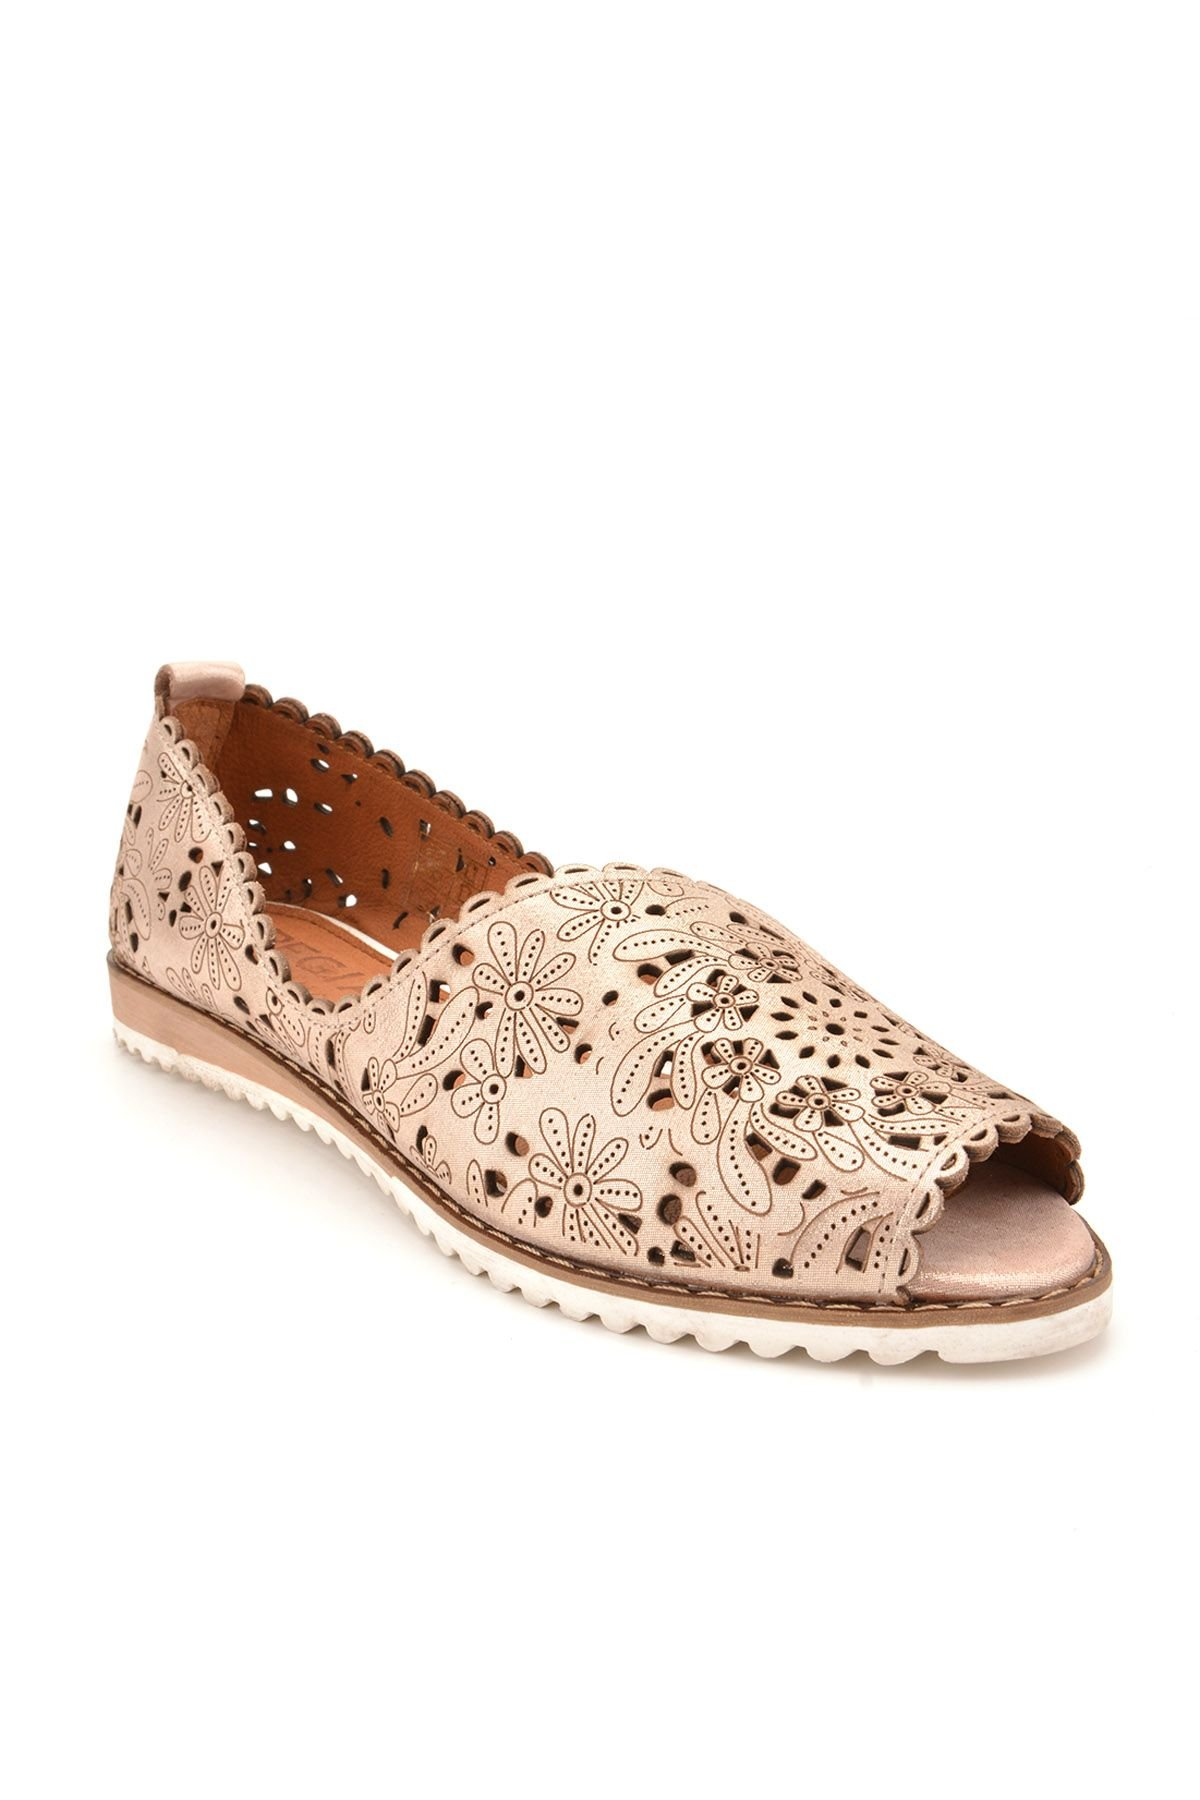 Pegia Open Fronted Women Shoes From Genuine Leather REC-135 Bronze